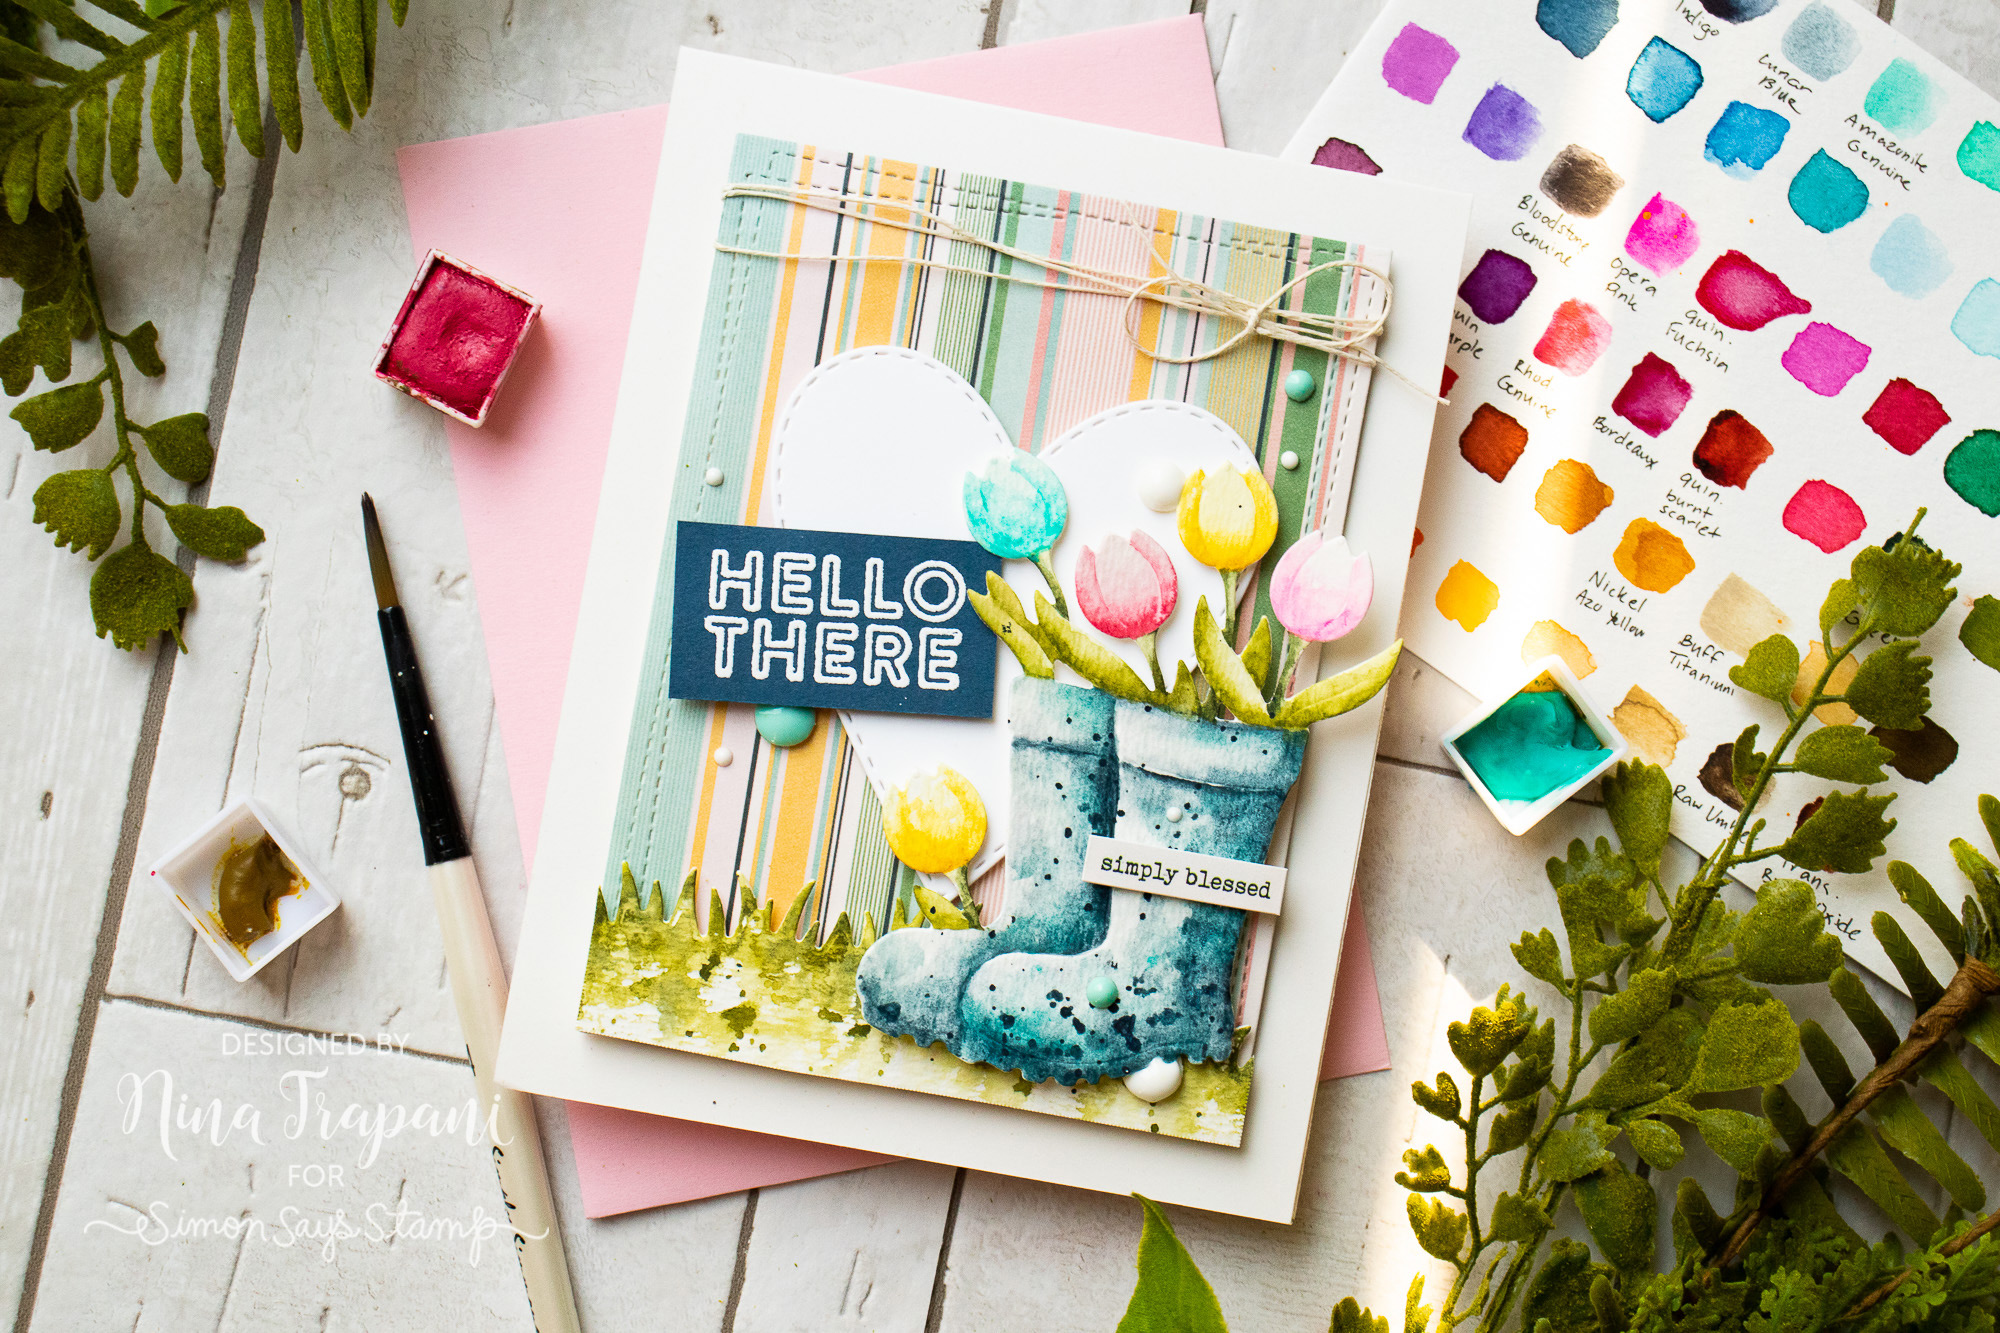 Watercoloring Die Cuts + Simon's April 2019 Card Kit